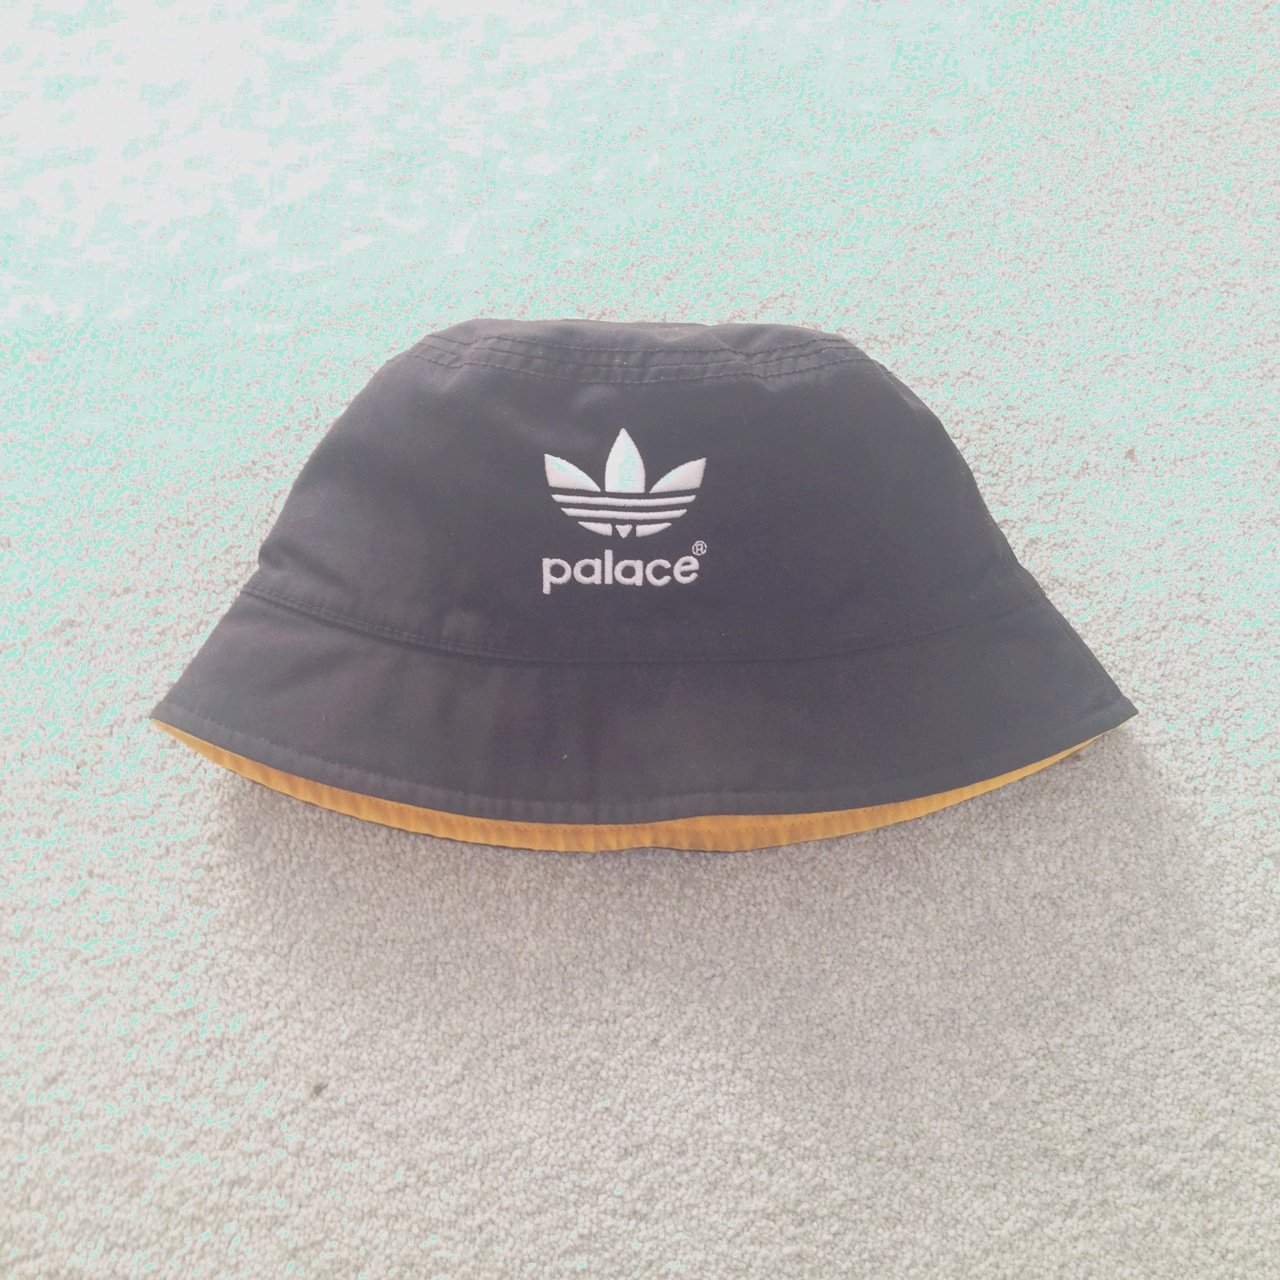 Palace x Adidas Bucket Hat. One Size. 8 10 condition. Hmu or - Depop 8a9d422a76d4